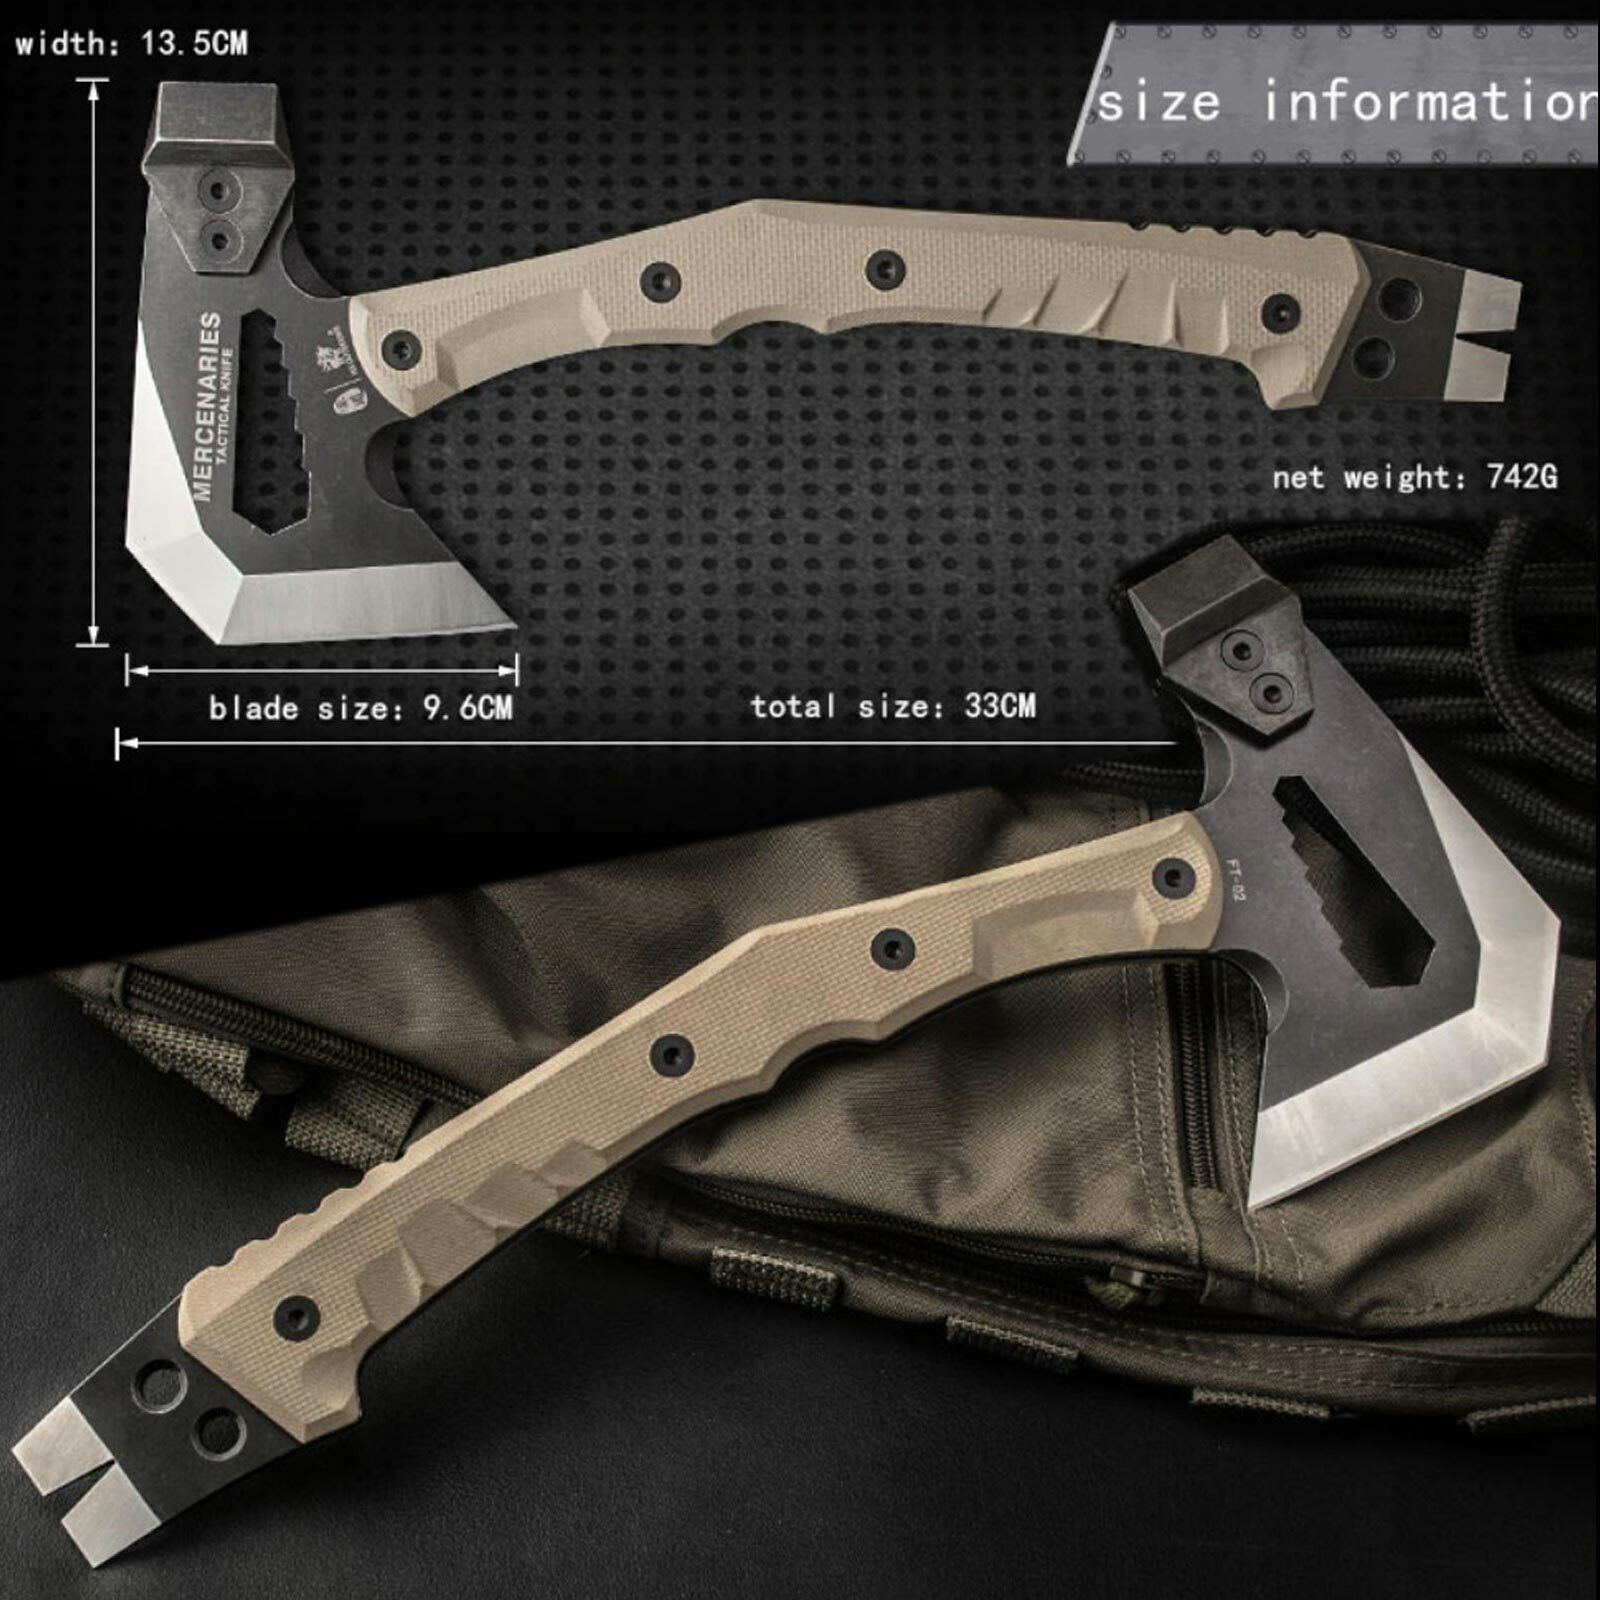 HX Outdoors FT-02 Tactical Axe 440C G10 Kydex  Sheath Multi-Tool  70% off